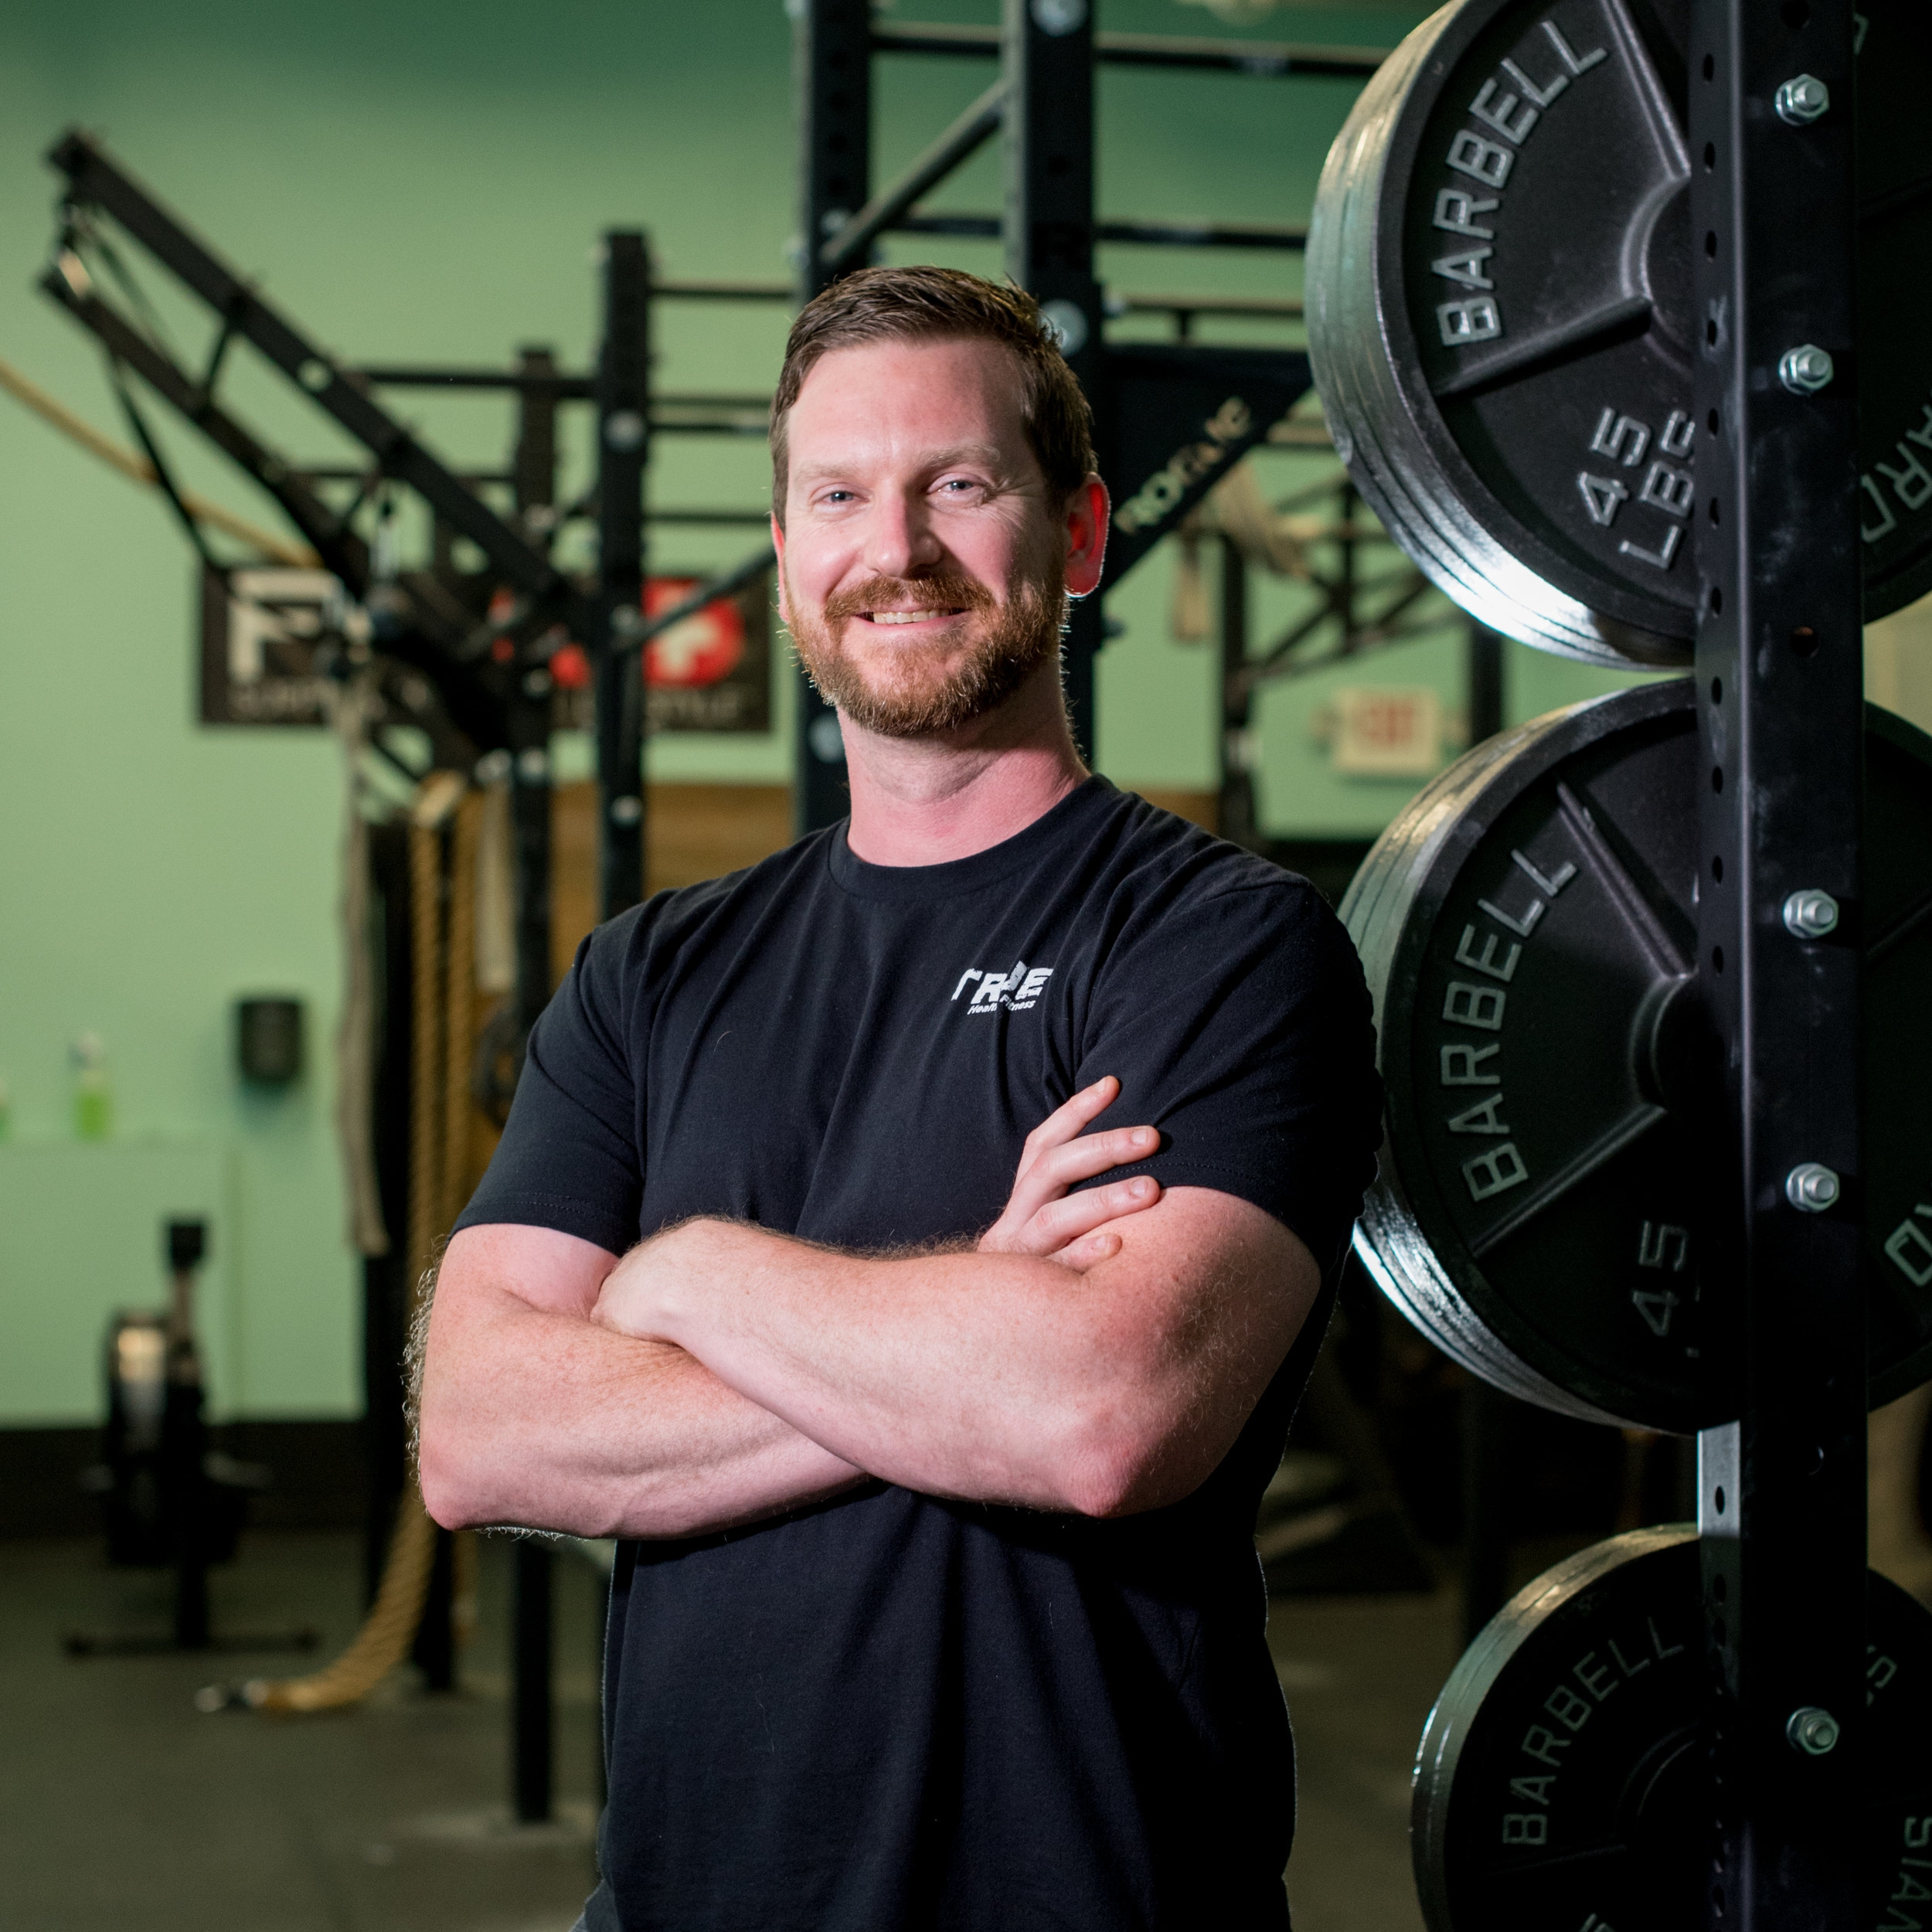 Dr. Kevin Andrews - Chiropractic PhysicianCertified Personal TrainerSpartan SGX CoachCo-owner of True Health and Fitness